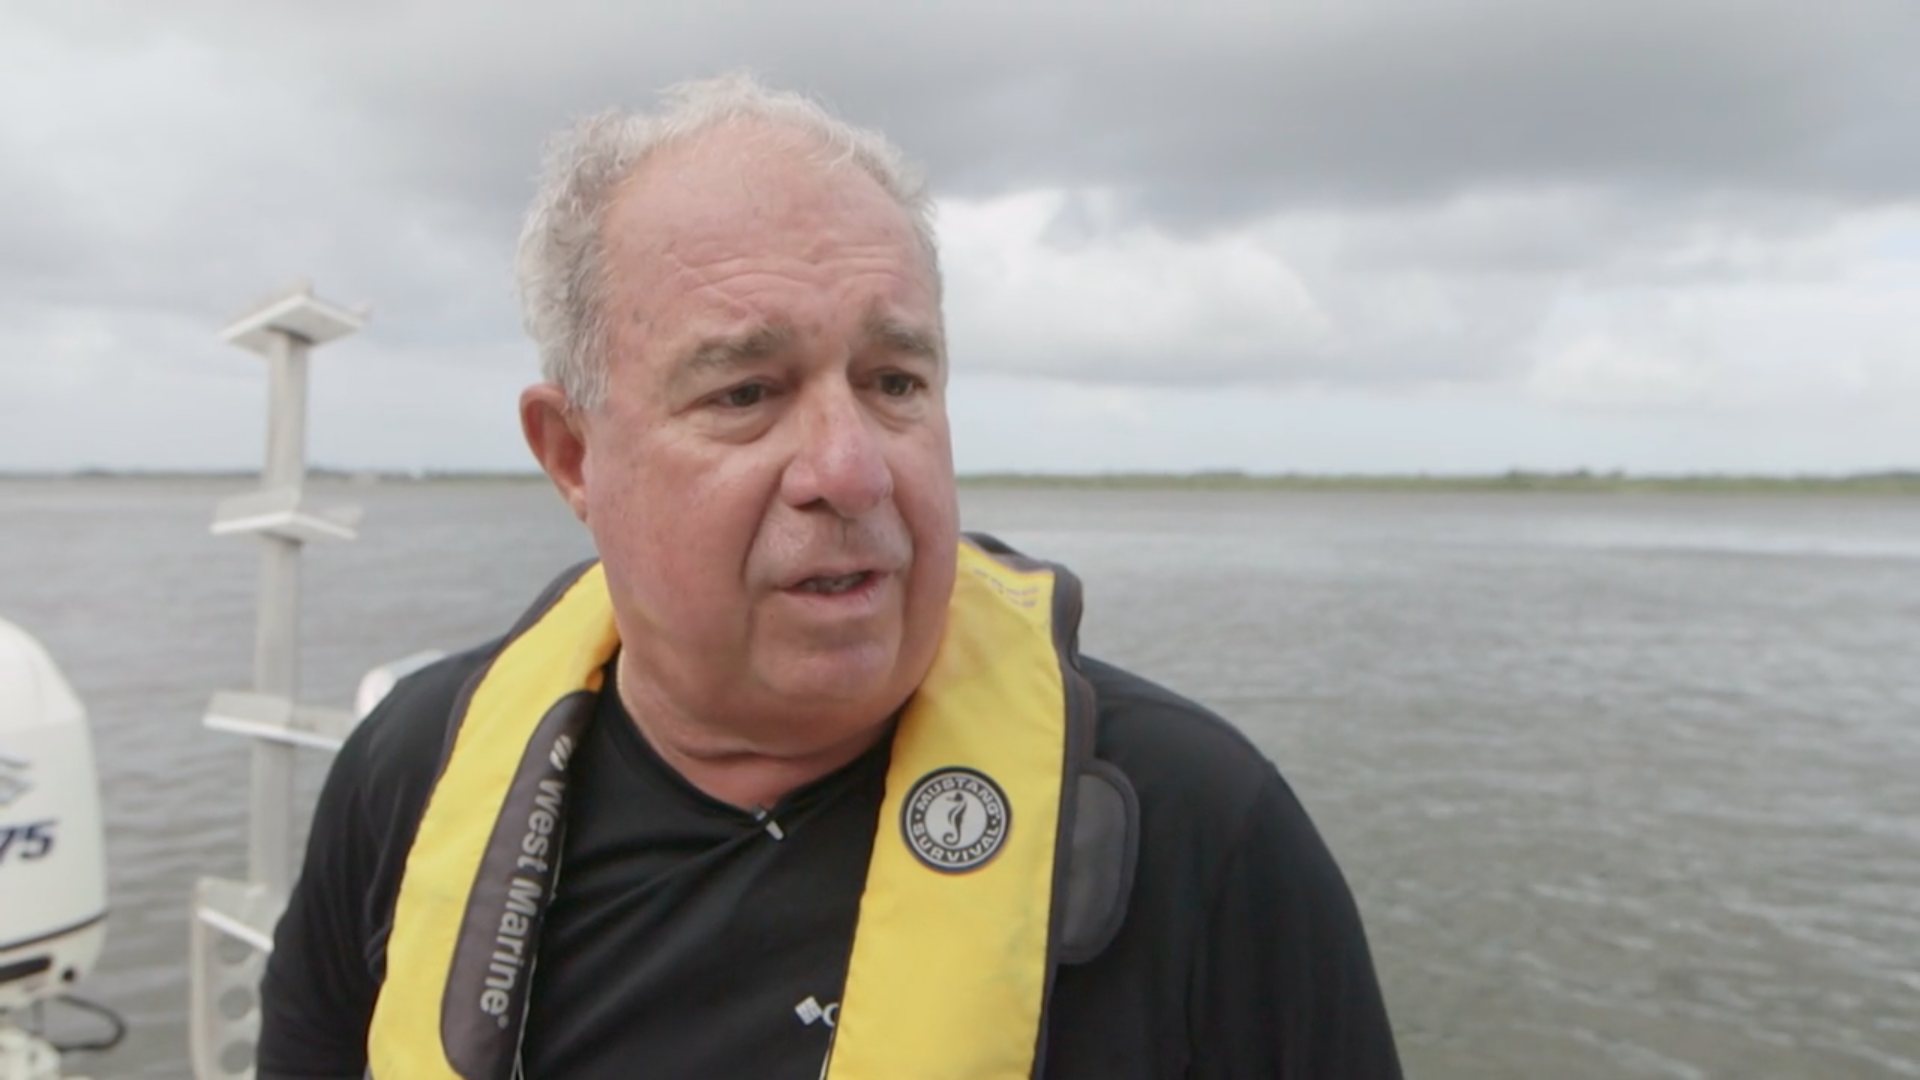 Brian Lapointe, a scientist at Florida Atlantic University's Harbor Branch Oceanographic Institute, has been studying the contamination of Indian River Lagoon. (Photo by Daniel Traub.)